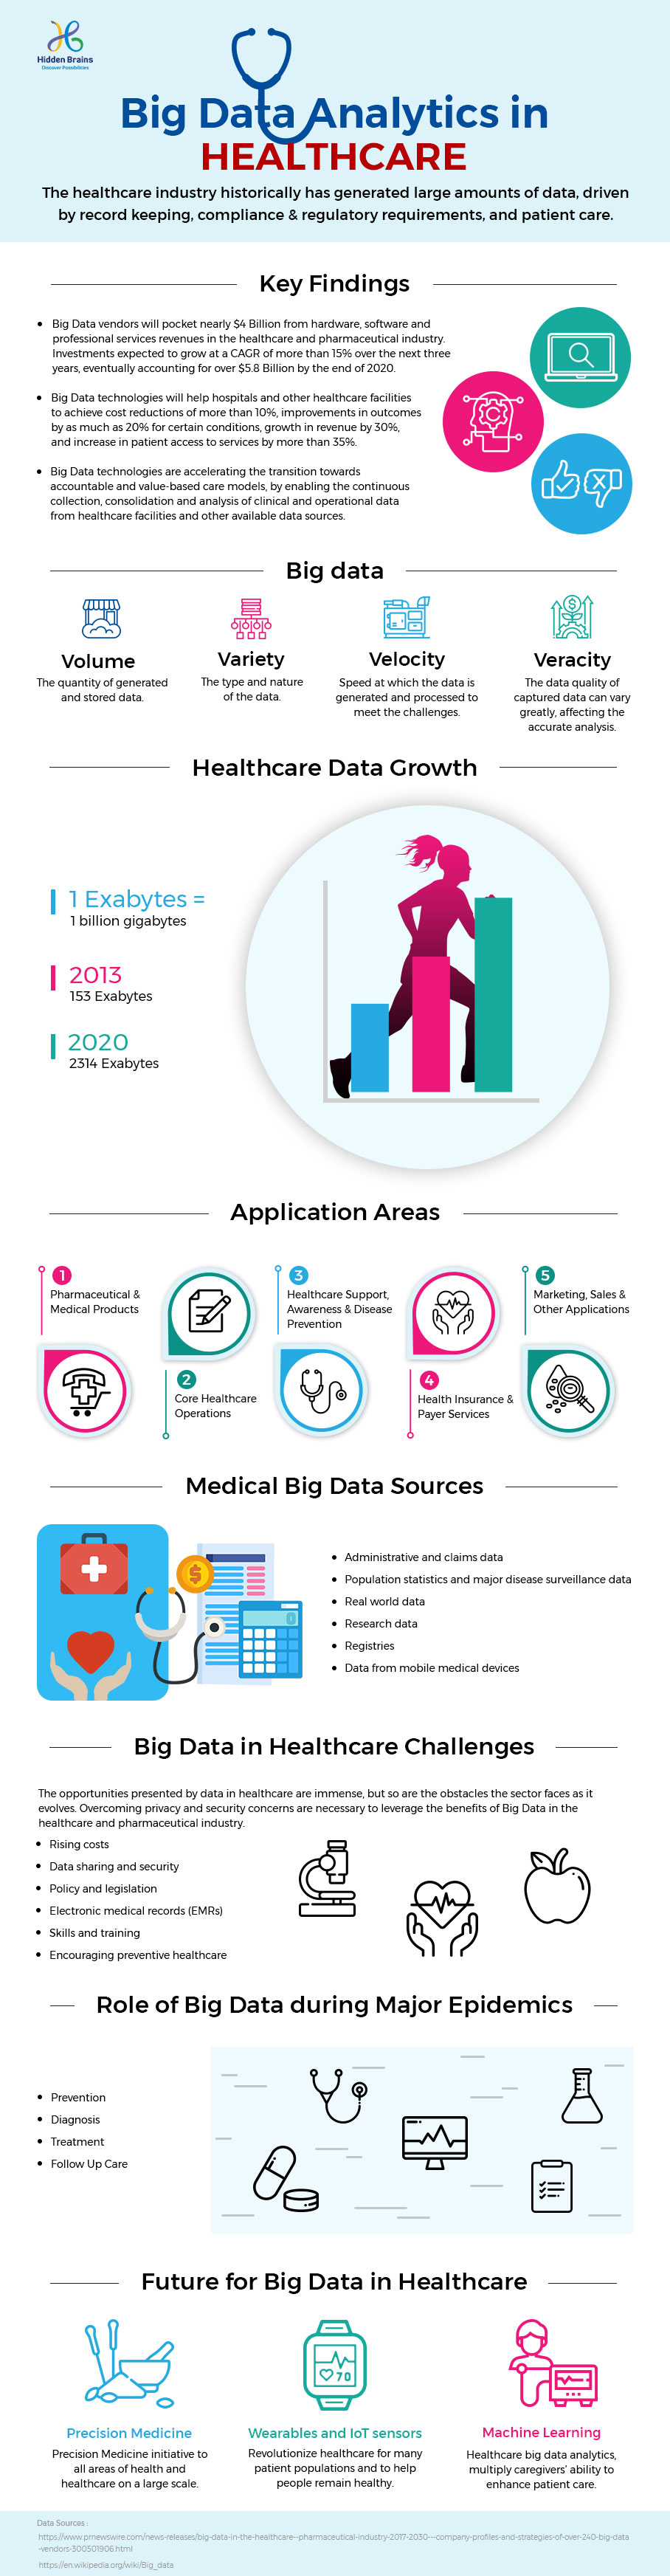 big data solutions in Healthcare Industry